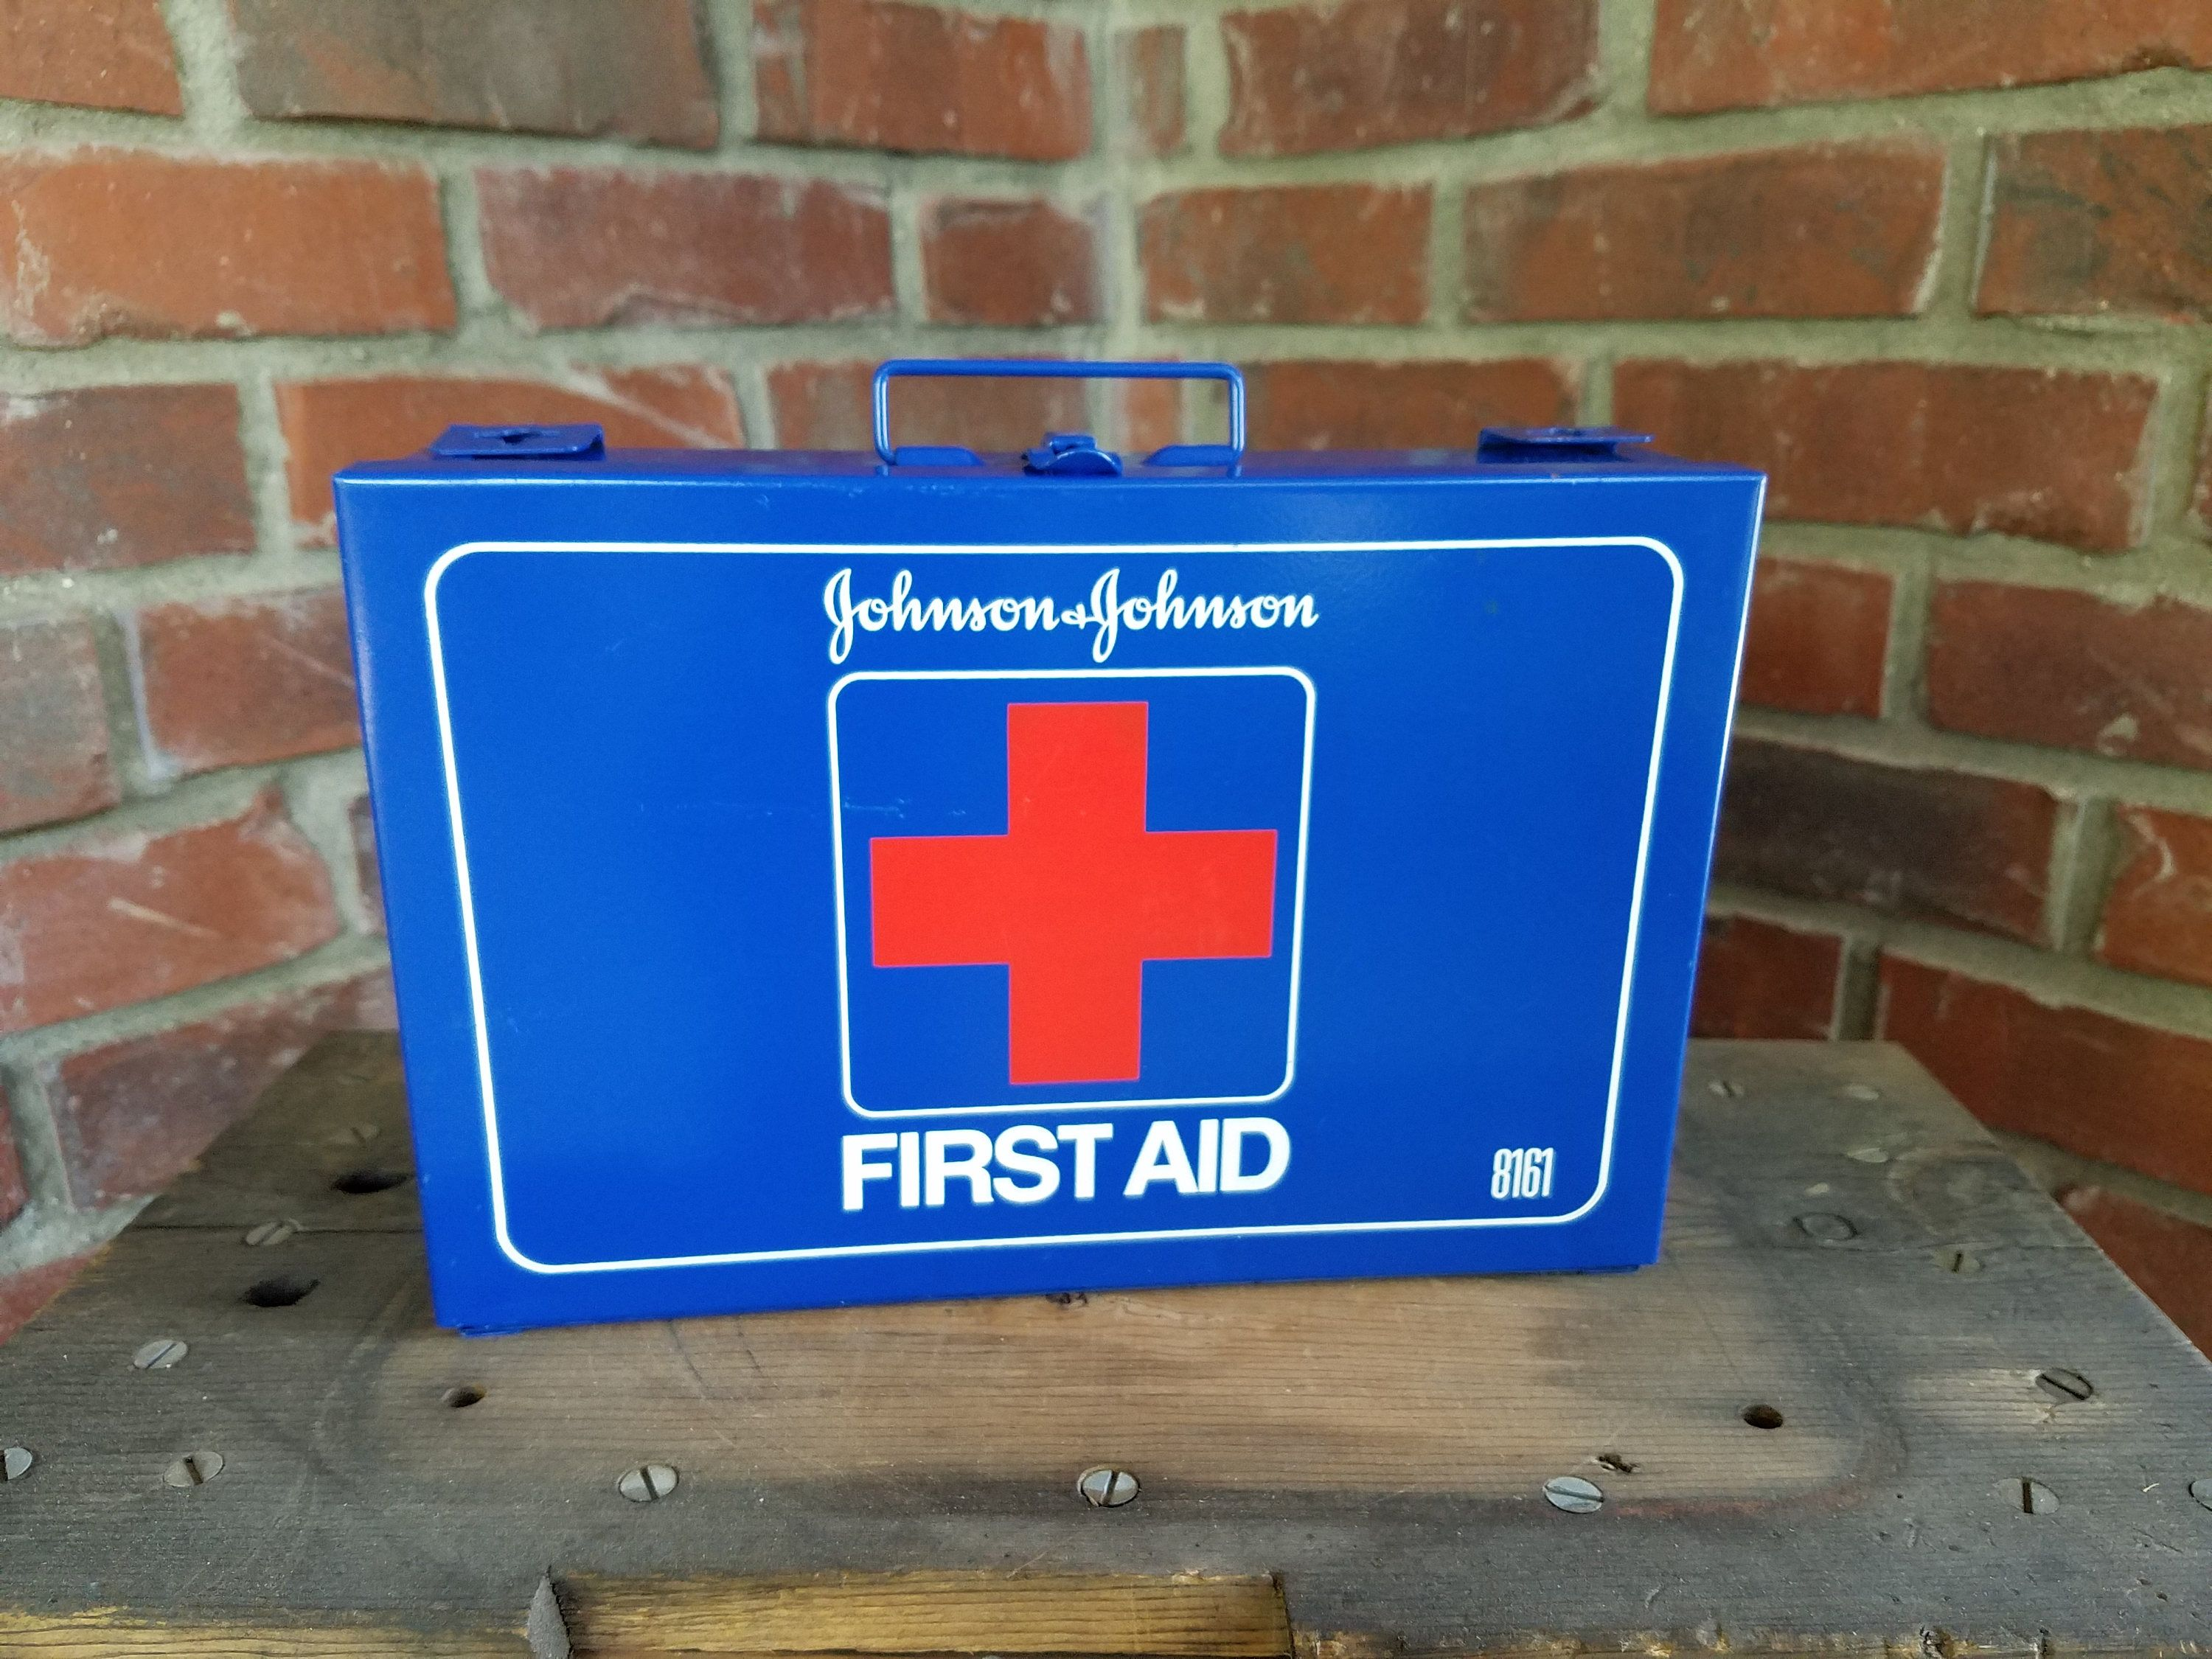 Johnson & Johnson First Aid Kit. Emergency kit, first aid box, metal ...